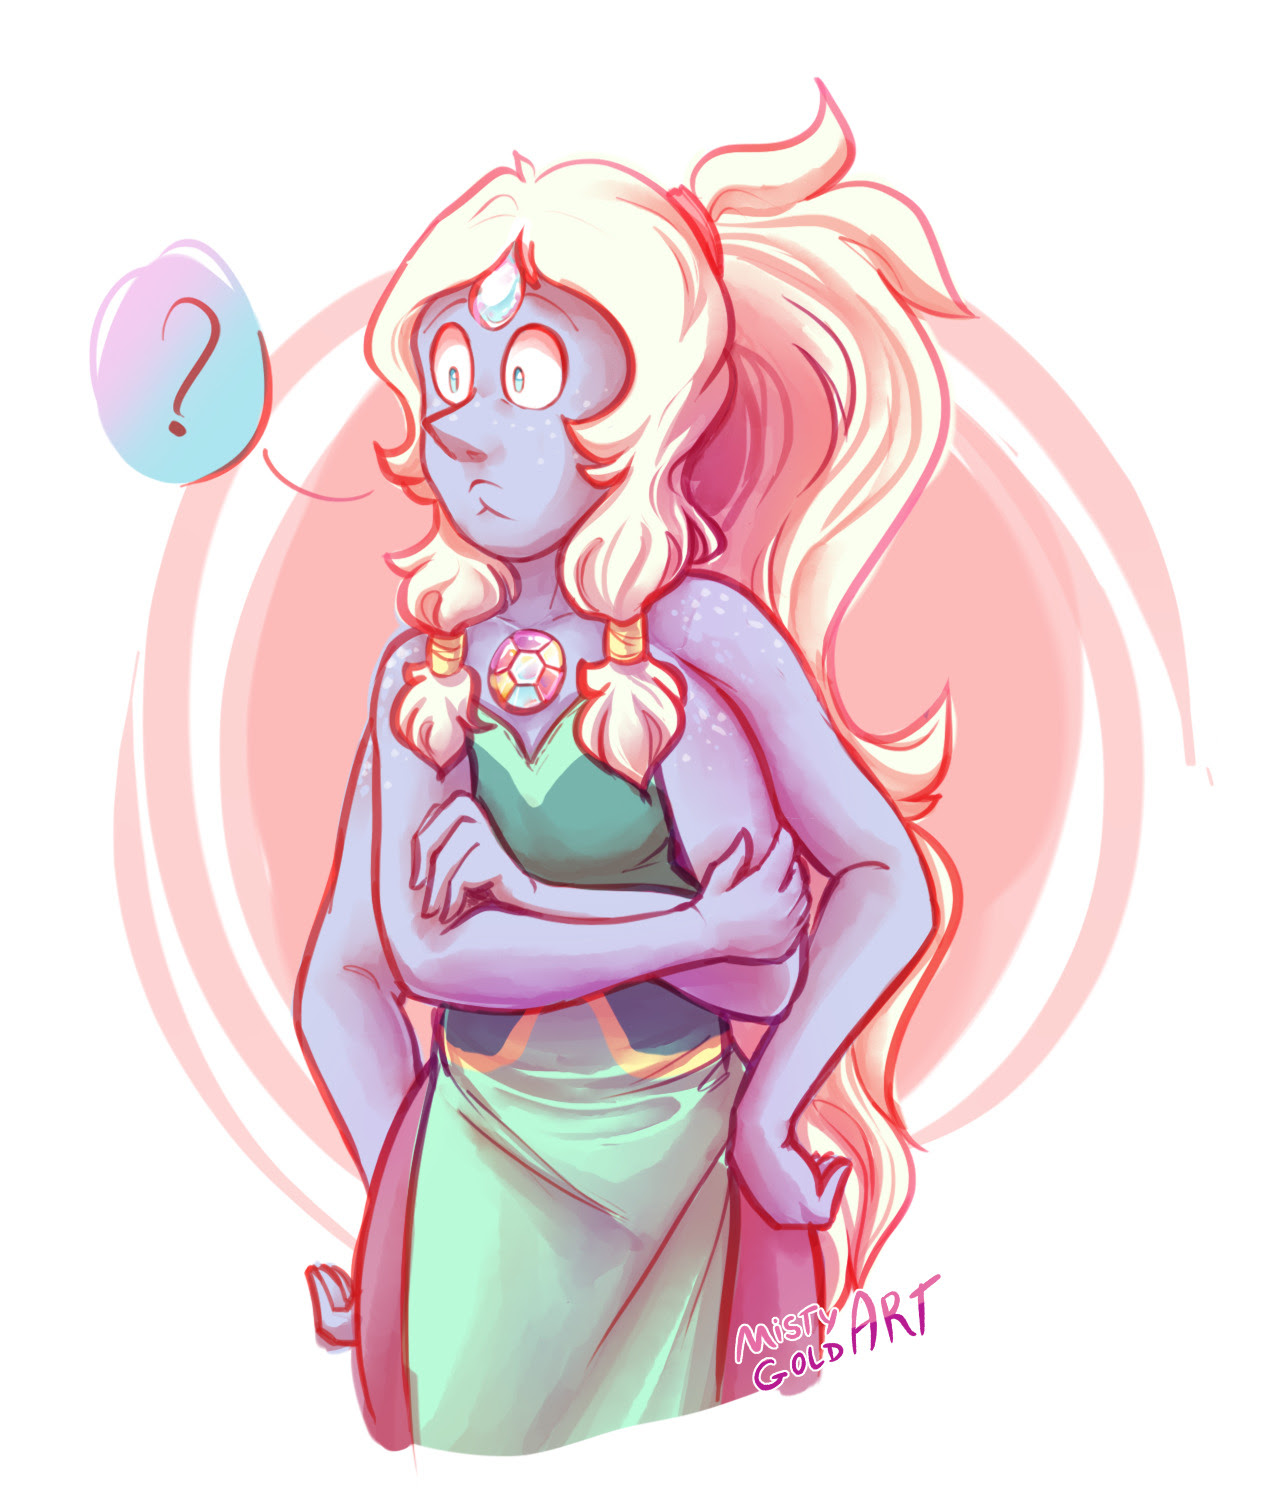 Pearlmethyst week day 7 - #HopalForOpal @annadesu @fuckyeahpearlmethyst *slams fist on the table* WHERE!! IS!! MY!! OPAL!! Crewniverse please…. I miss her so much she's one of my most favorite fusions...